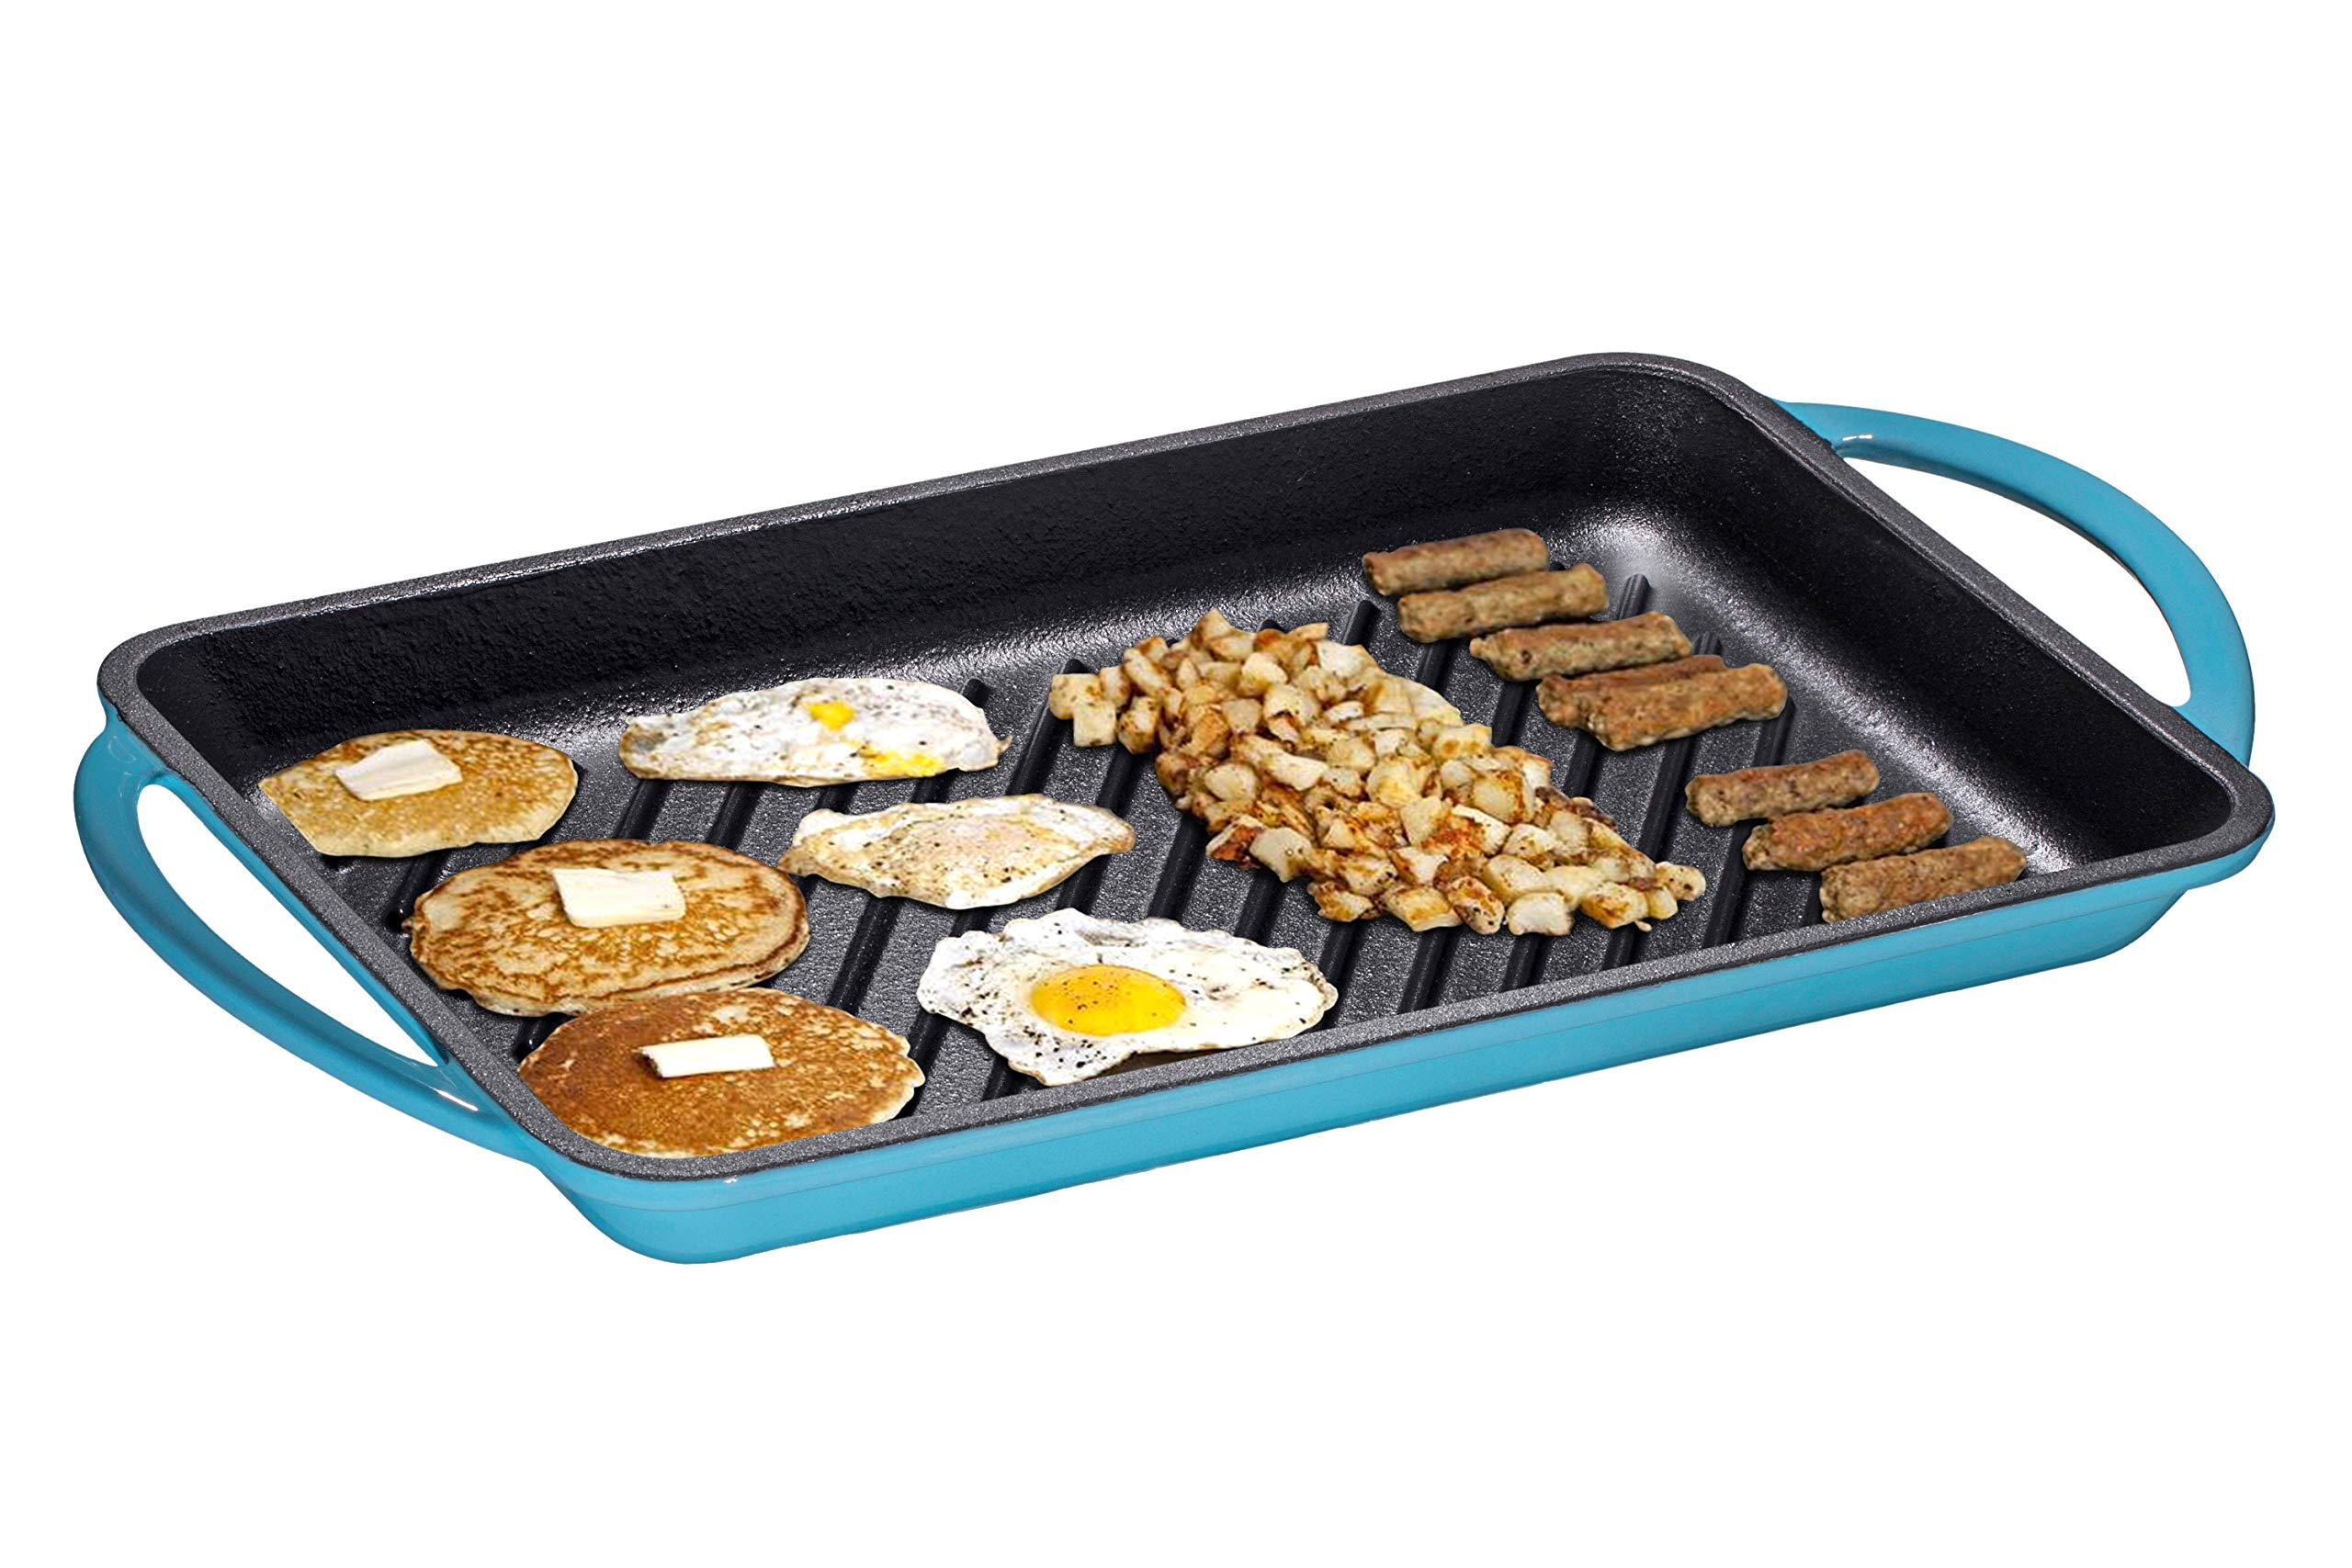 Enameled Cast-Iron Rectangular Grill Pan, Loop Handles, (Turquoise) 9.5'' x 13.5''